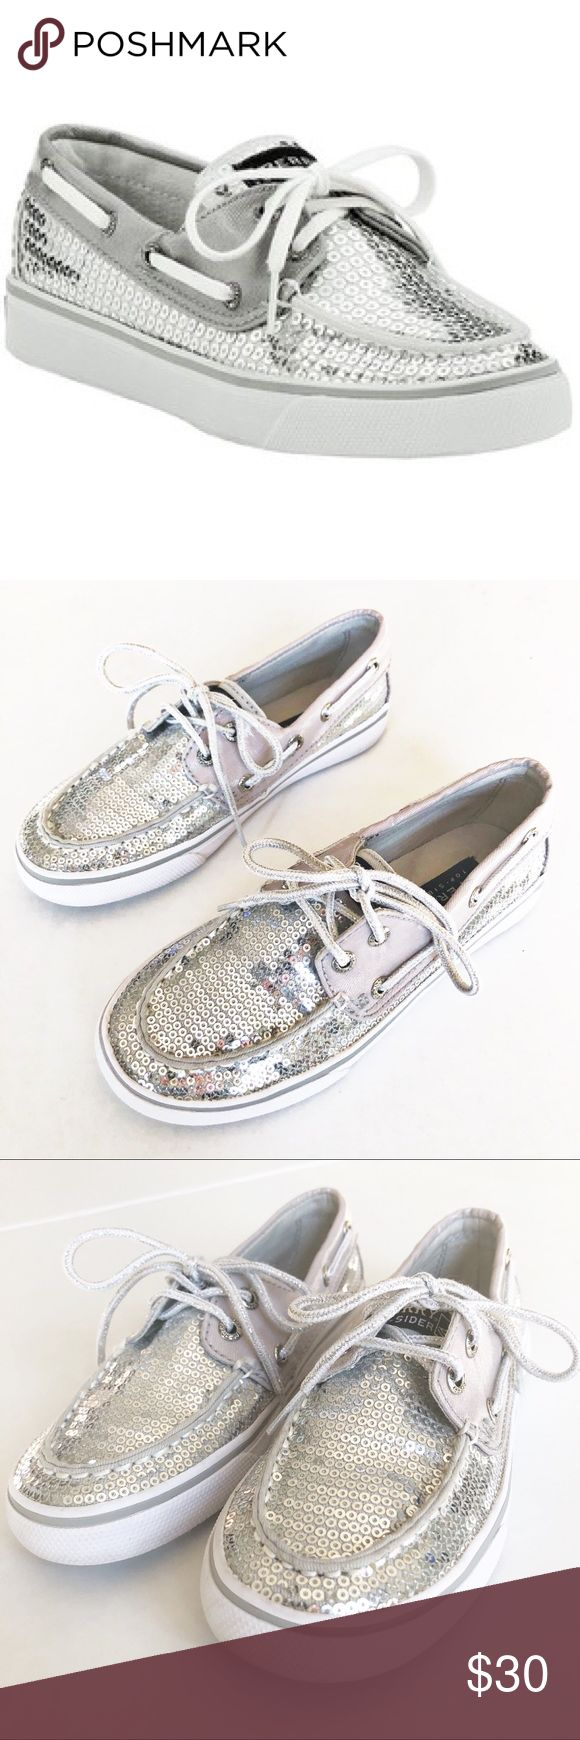 GIRLS Sperry Bahama Sequin Boat Shoes Size 13 Girls Sperry Top Sider 'Bahama' Sequin Boat Shoes in silver. Moccasin style round toe, lace up closure. Rubber sole, fabric upper. Excellent used condition! Sperry Shoes